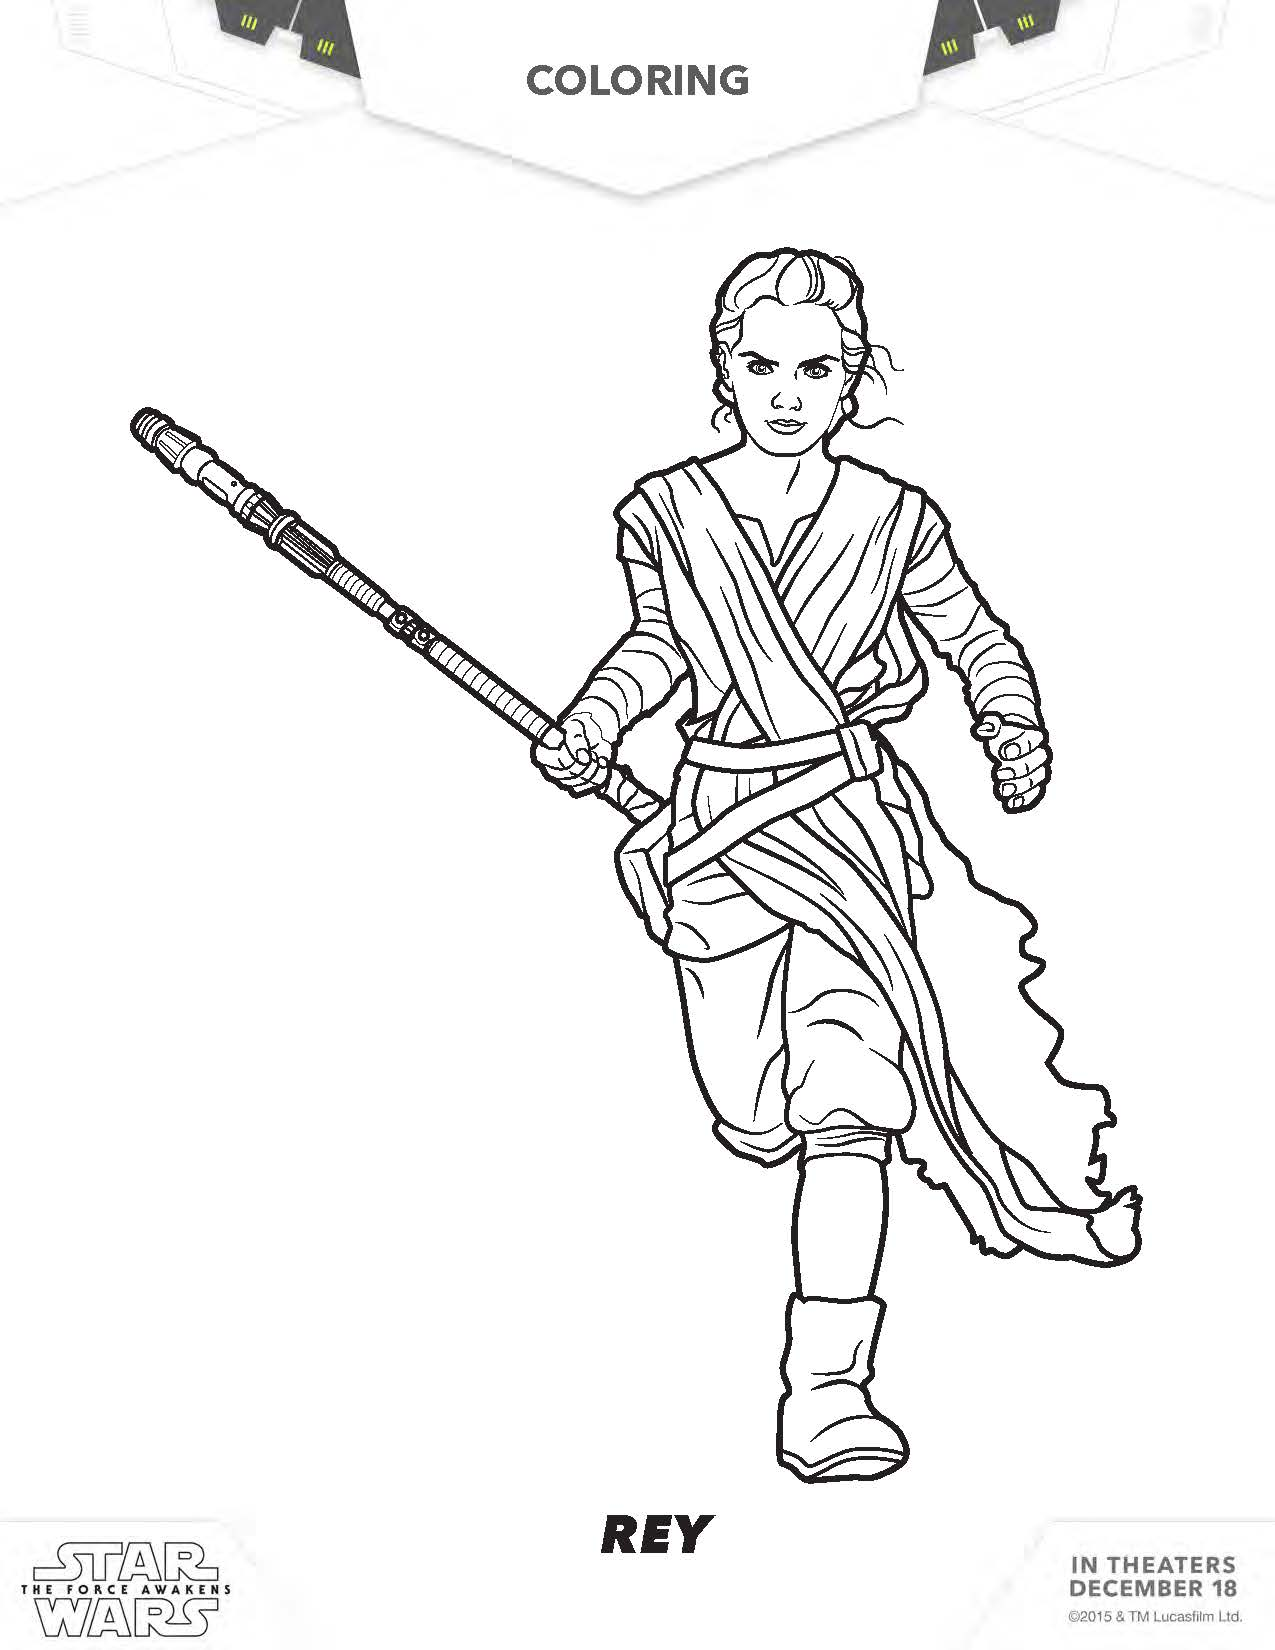 Coloring pages star wars bb8 - Star Wars Rey Coloring Pages